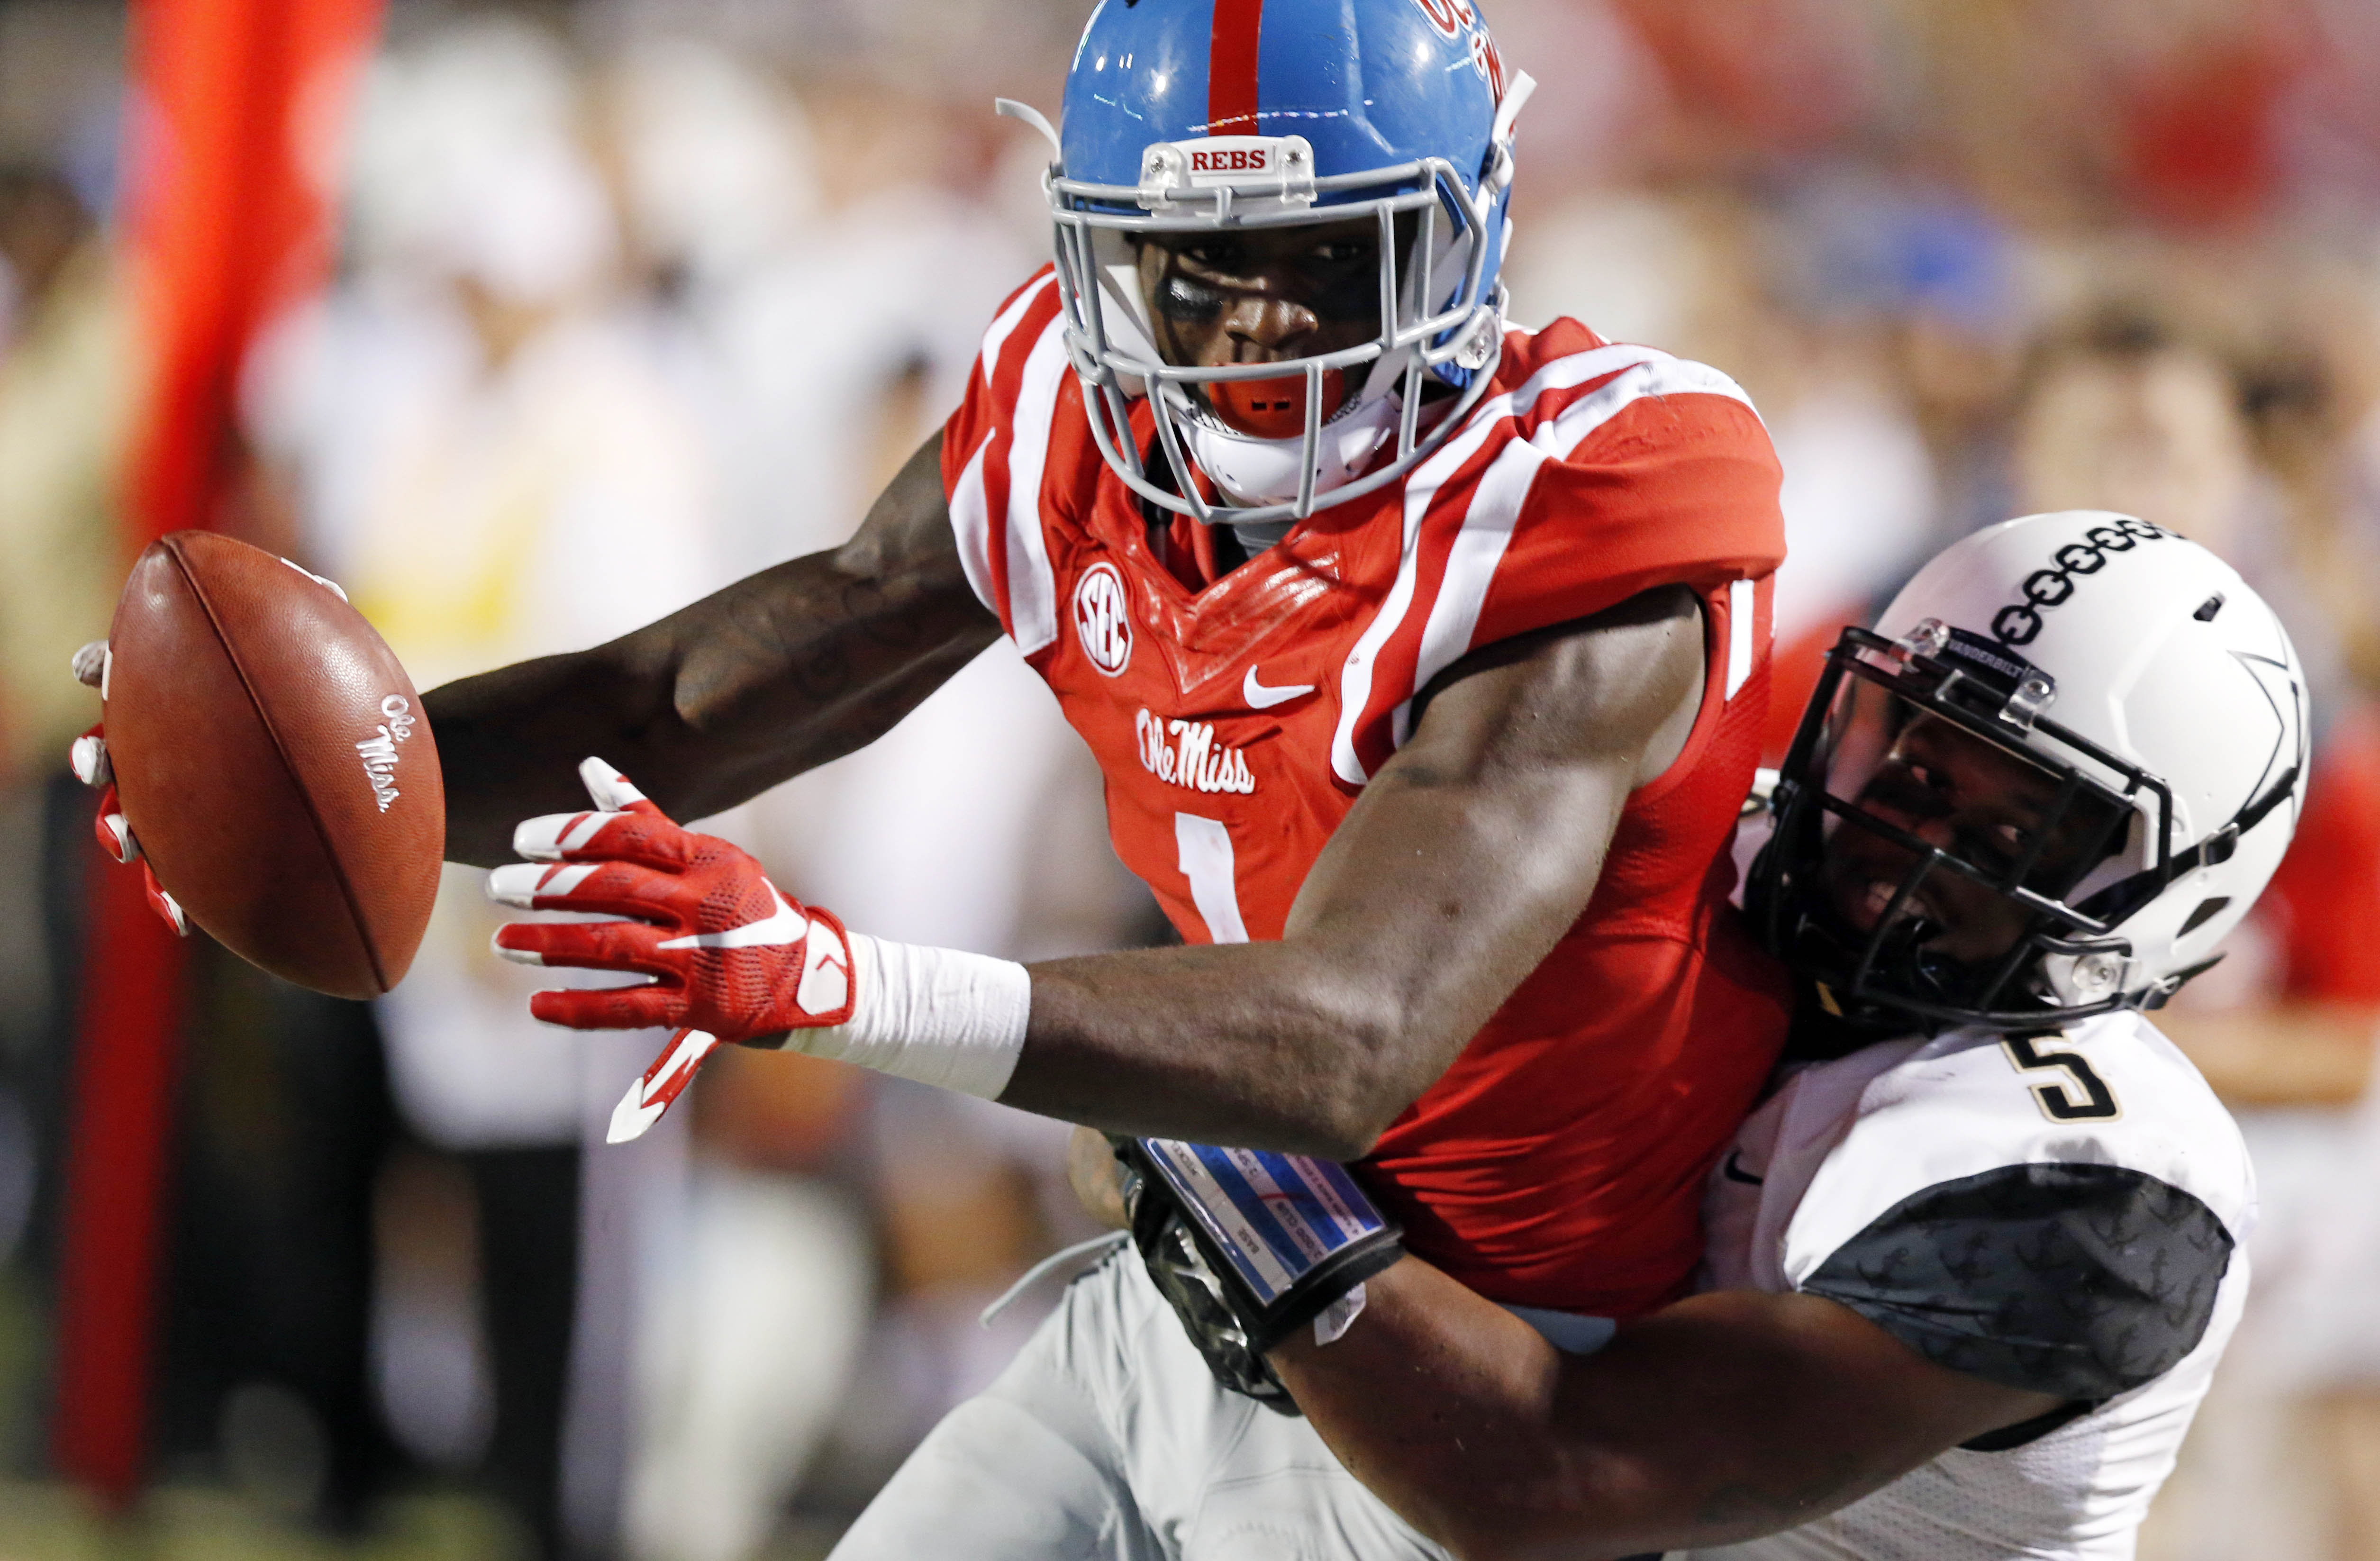 Mississippi wide receiver Laquon Treadwell (1) is tackled short of a touchdown after a pass reception against Vanderbilt cornerback Torren McGaster (5) during the first half of an NCAA college football game Saturday, Sept. 26, 2015, in Oxford, Miss. (AP P